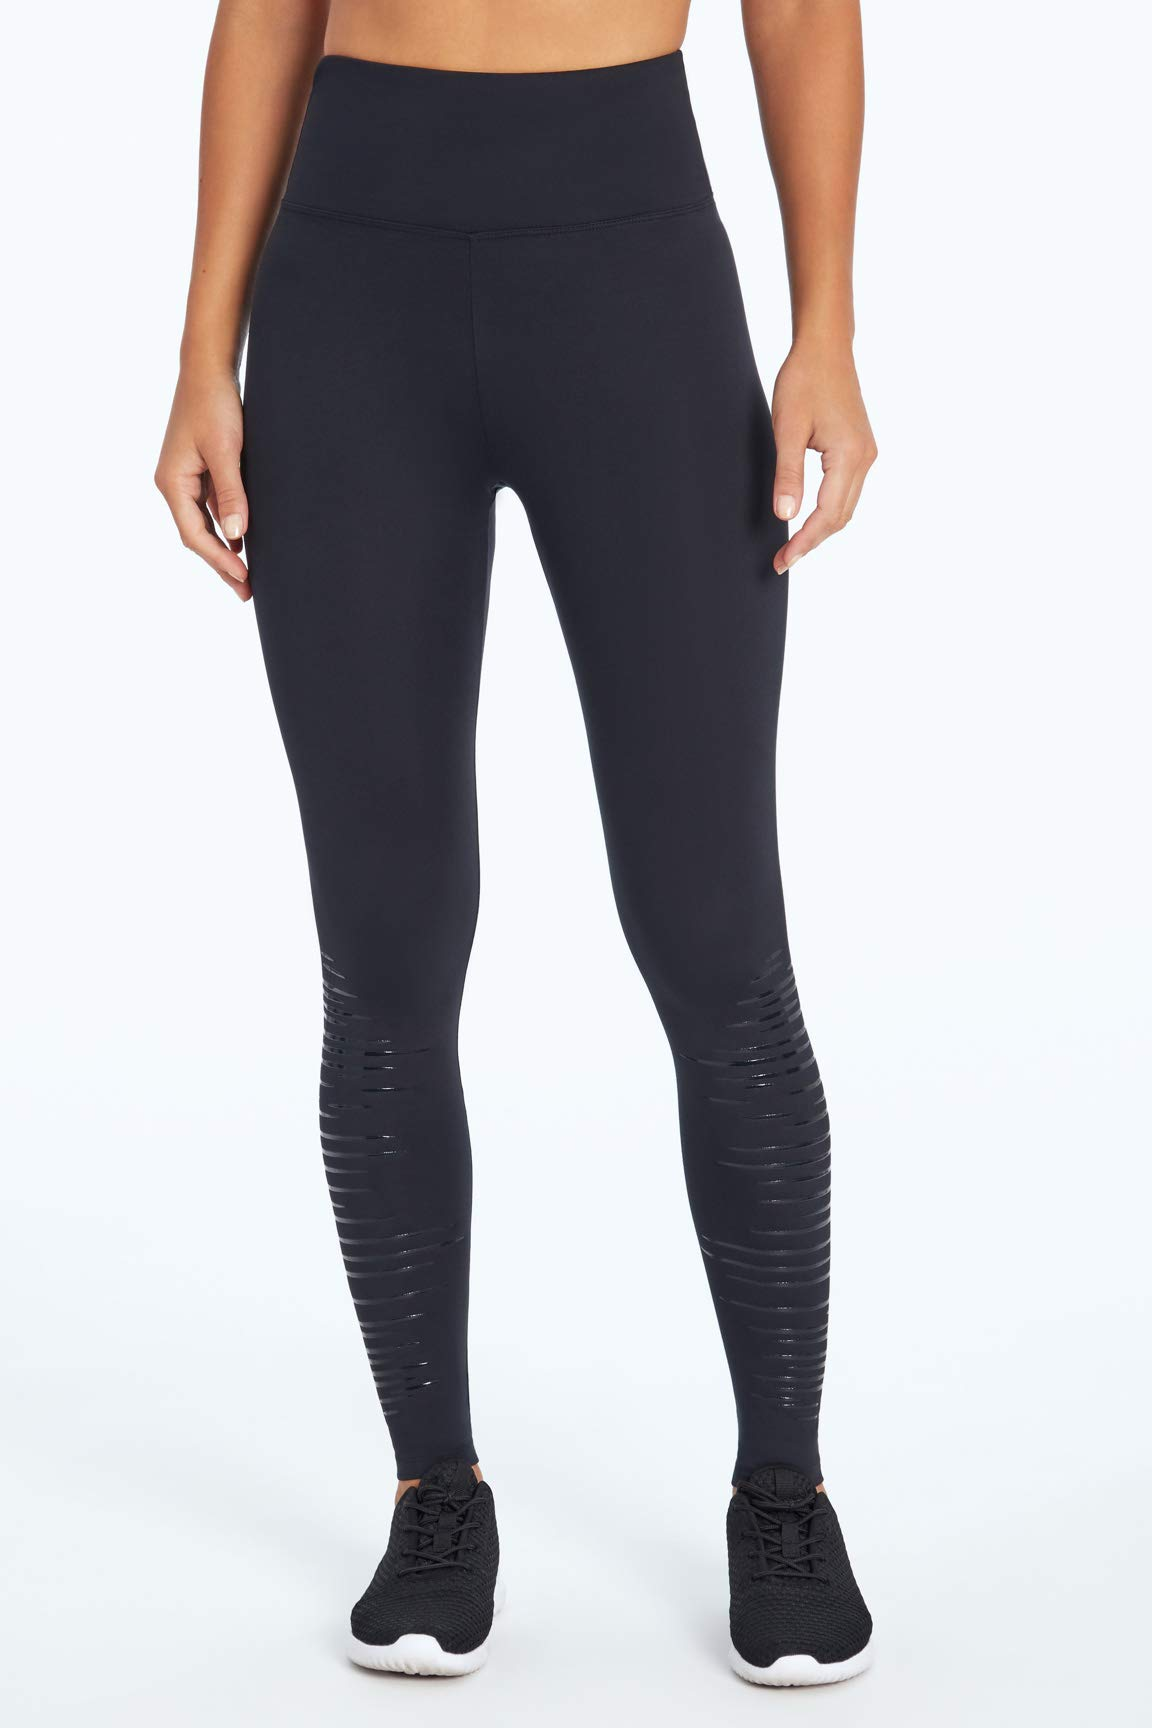 Marika High Rise Performance Frequency Legging, Black, Small